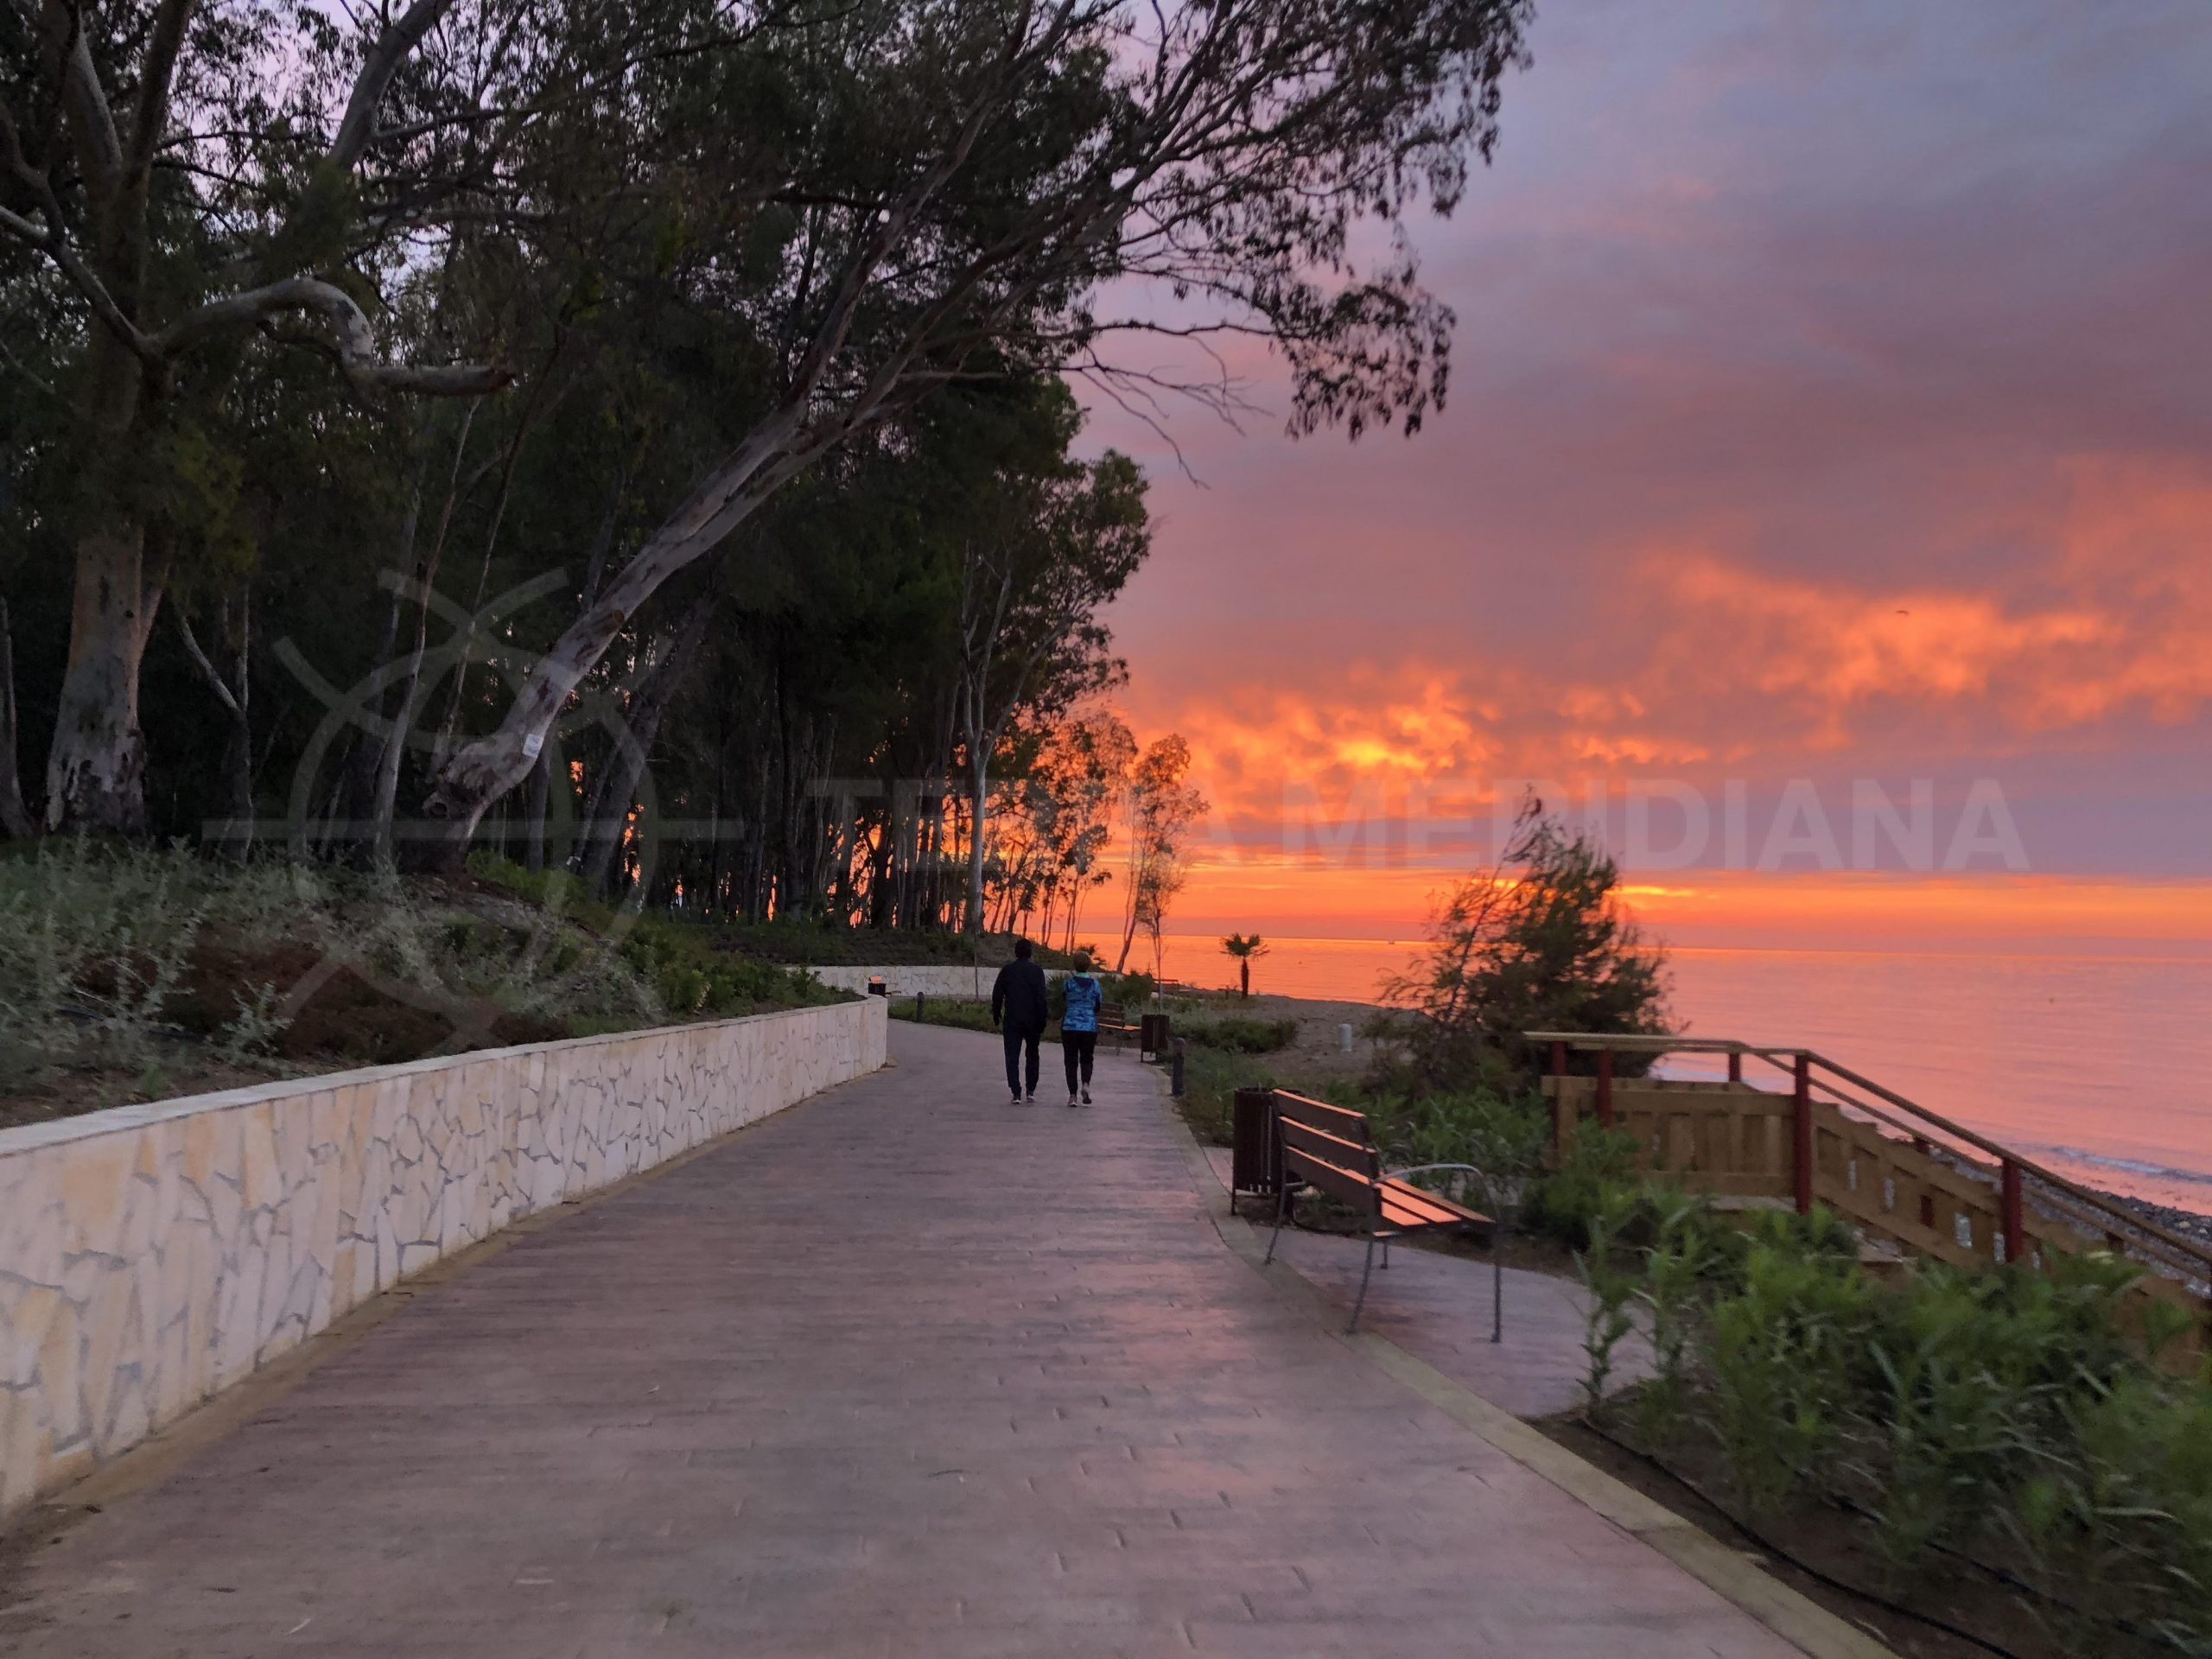 New section of coastal pathway connects Estepona